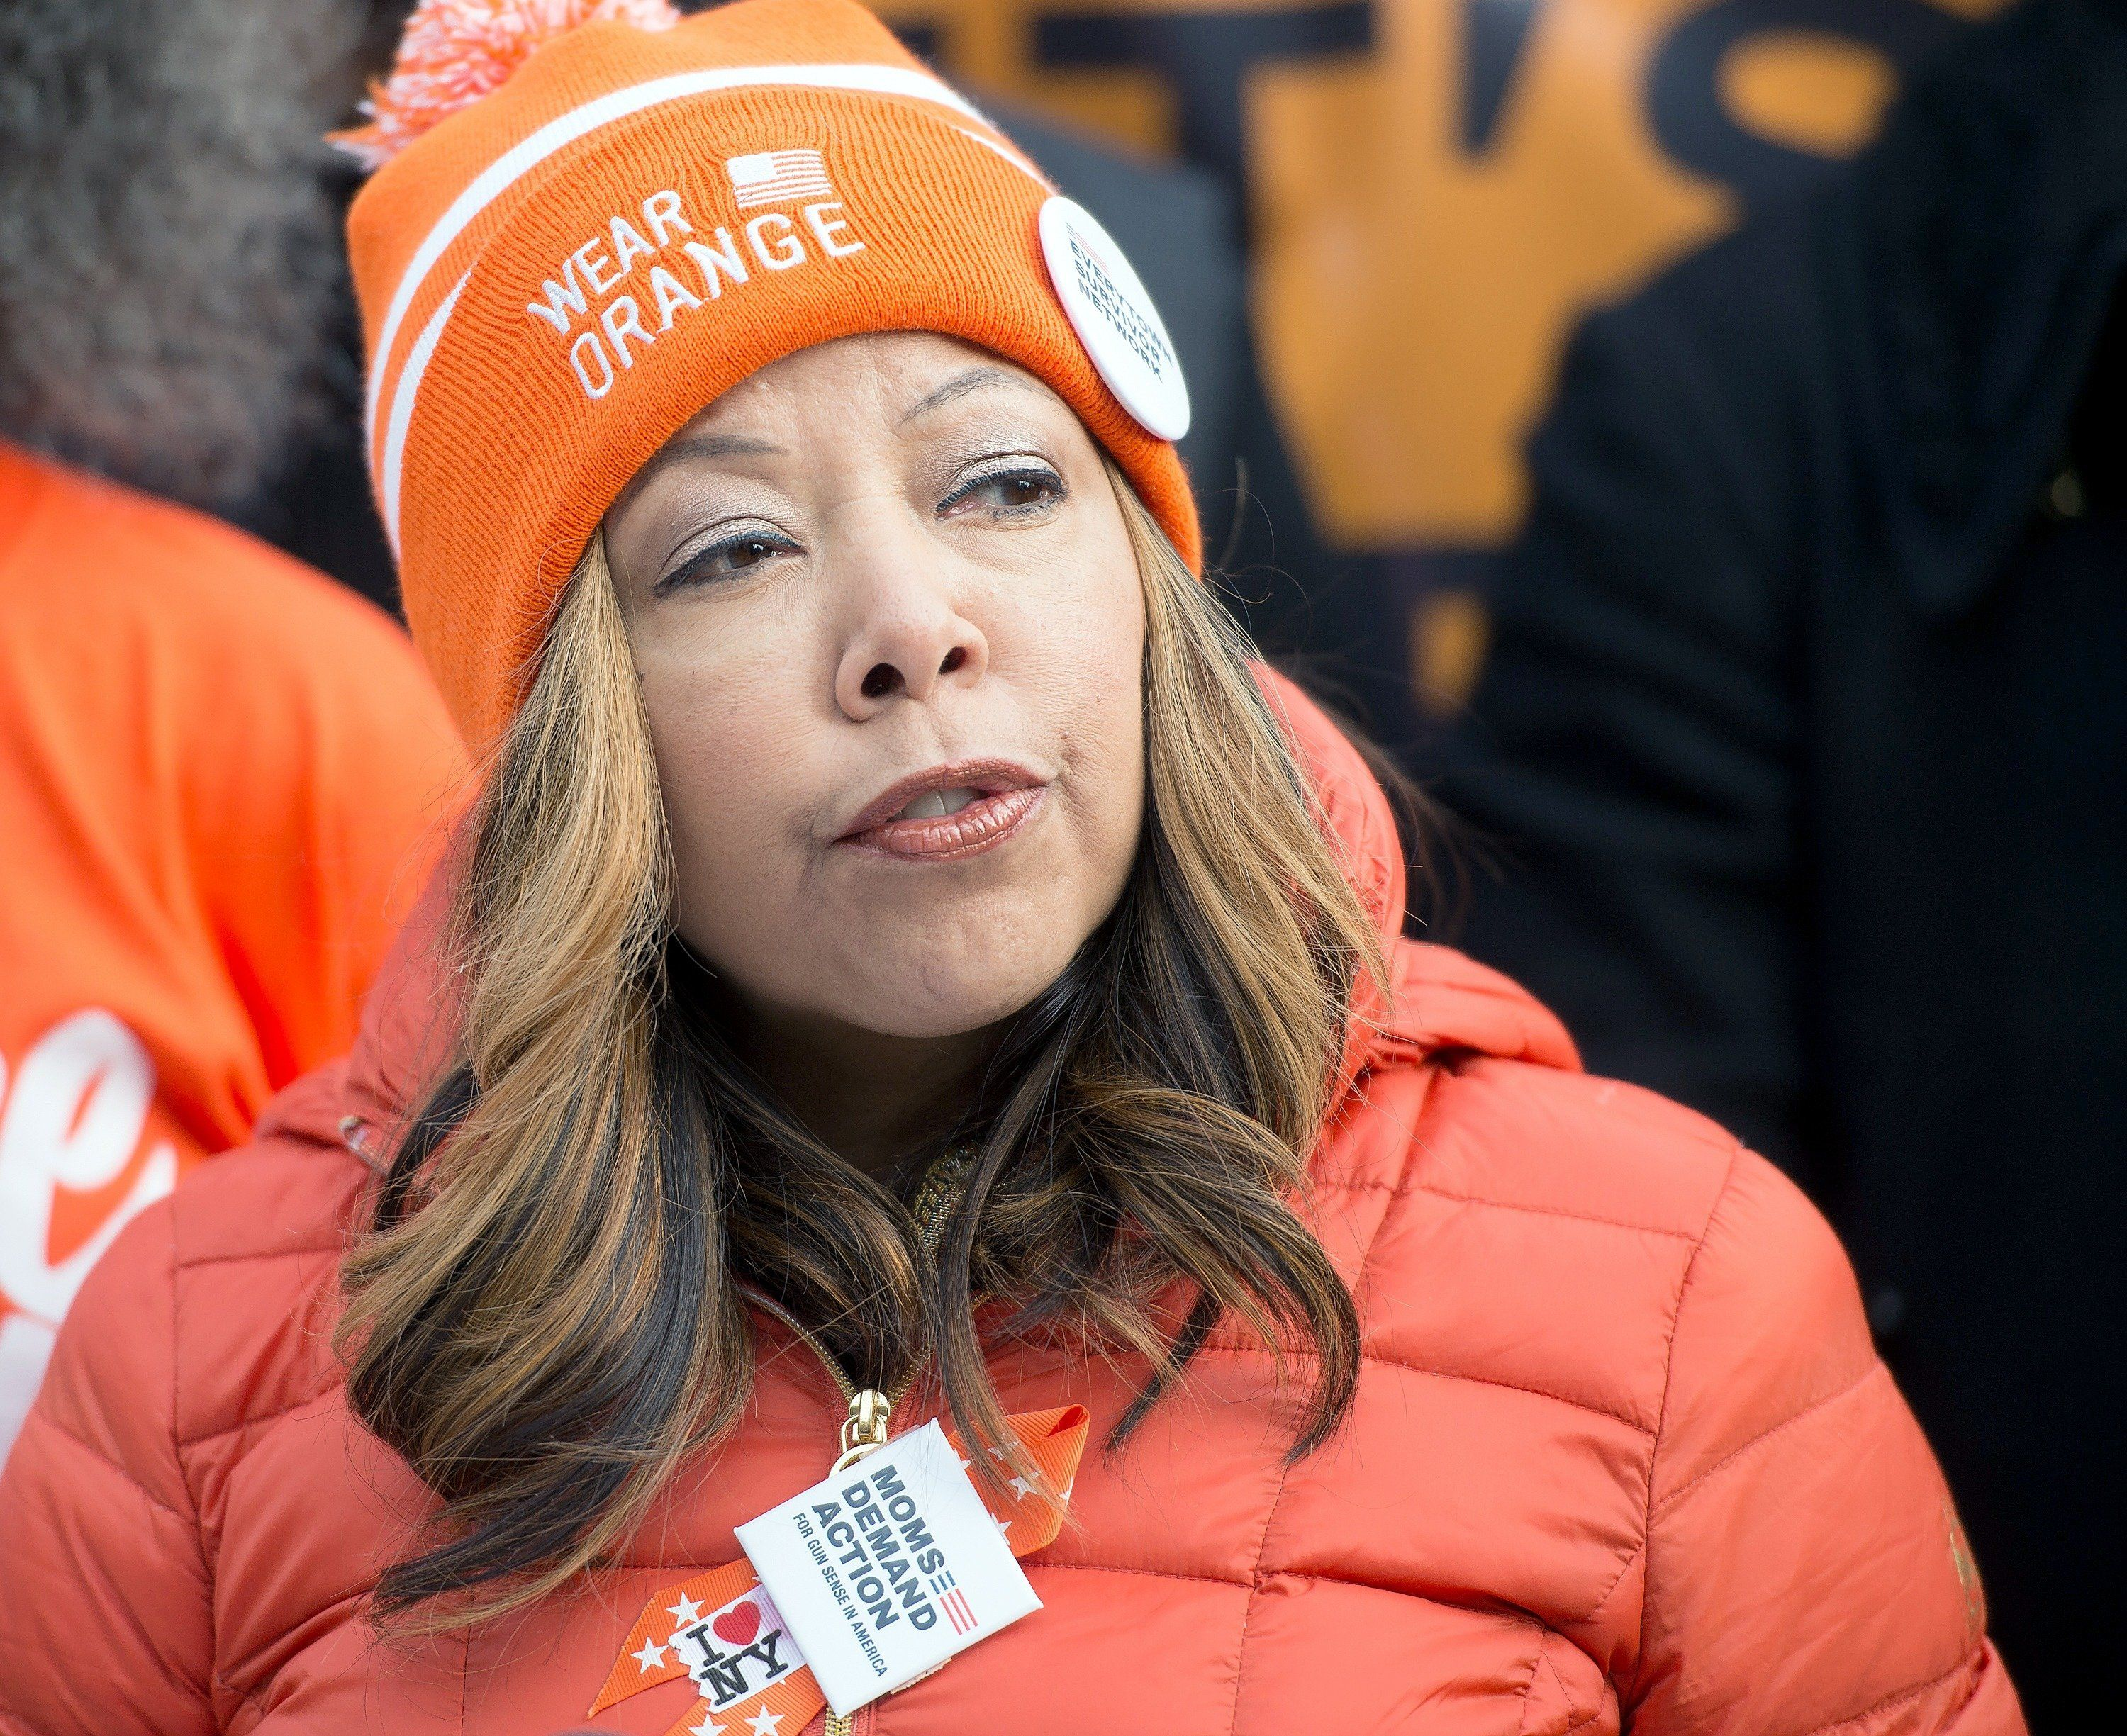 Lucy McBath, at a Peace Week event in New York City in 2016, will have a tough race against Karen Handel, who won the special